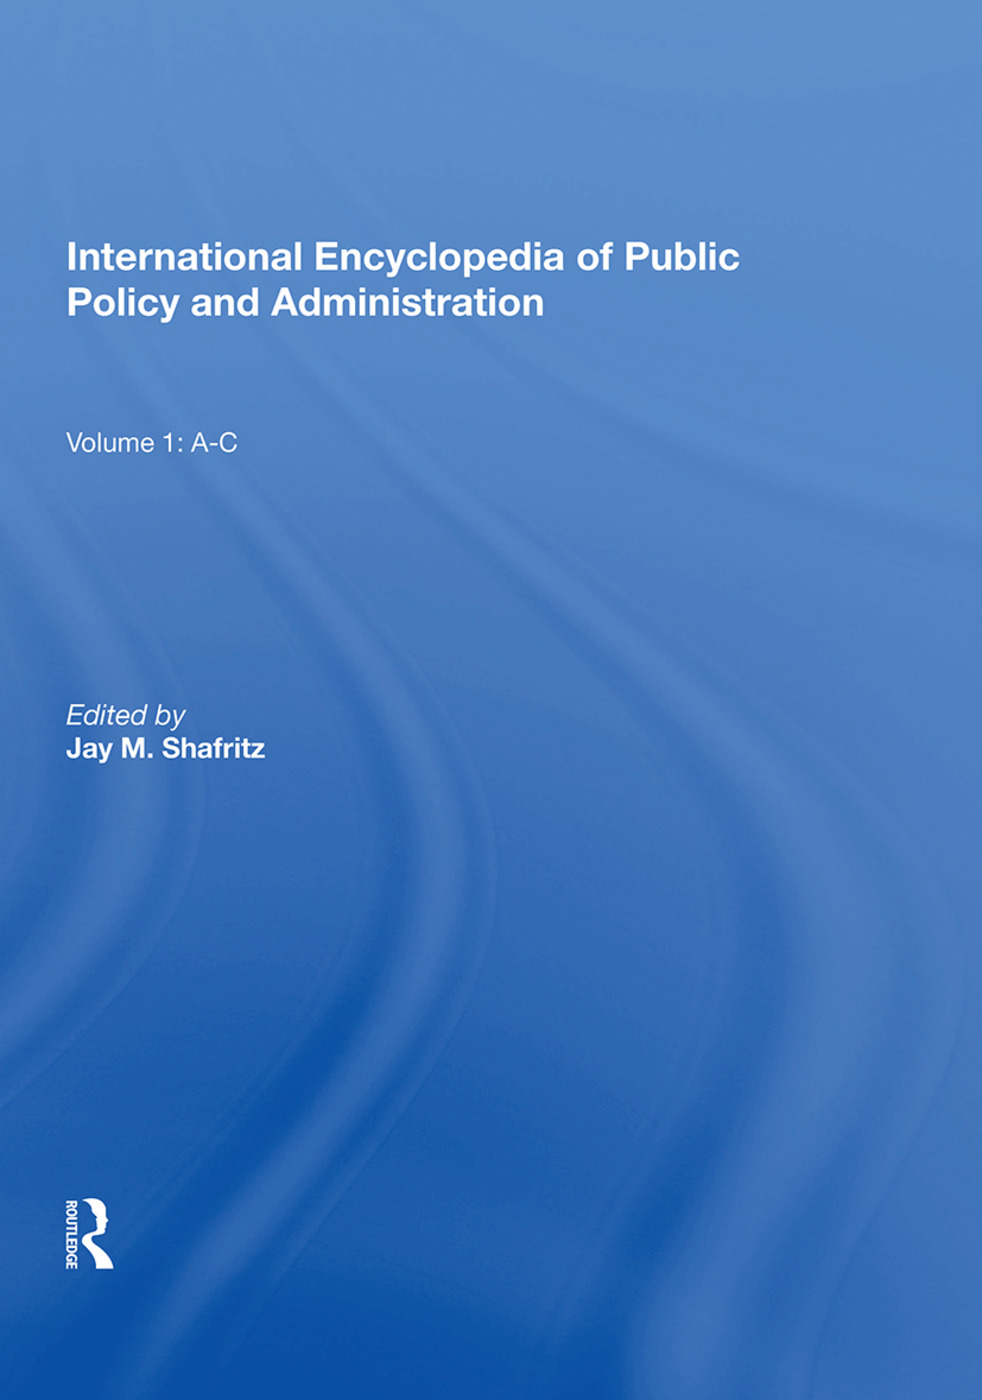 International Encyclopedia of Public Policy and Administration Volume 1 book cover